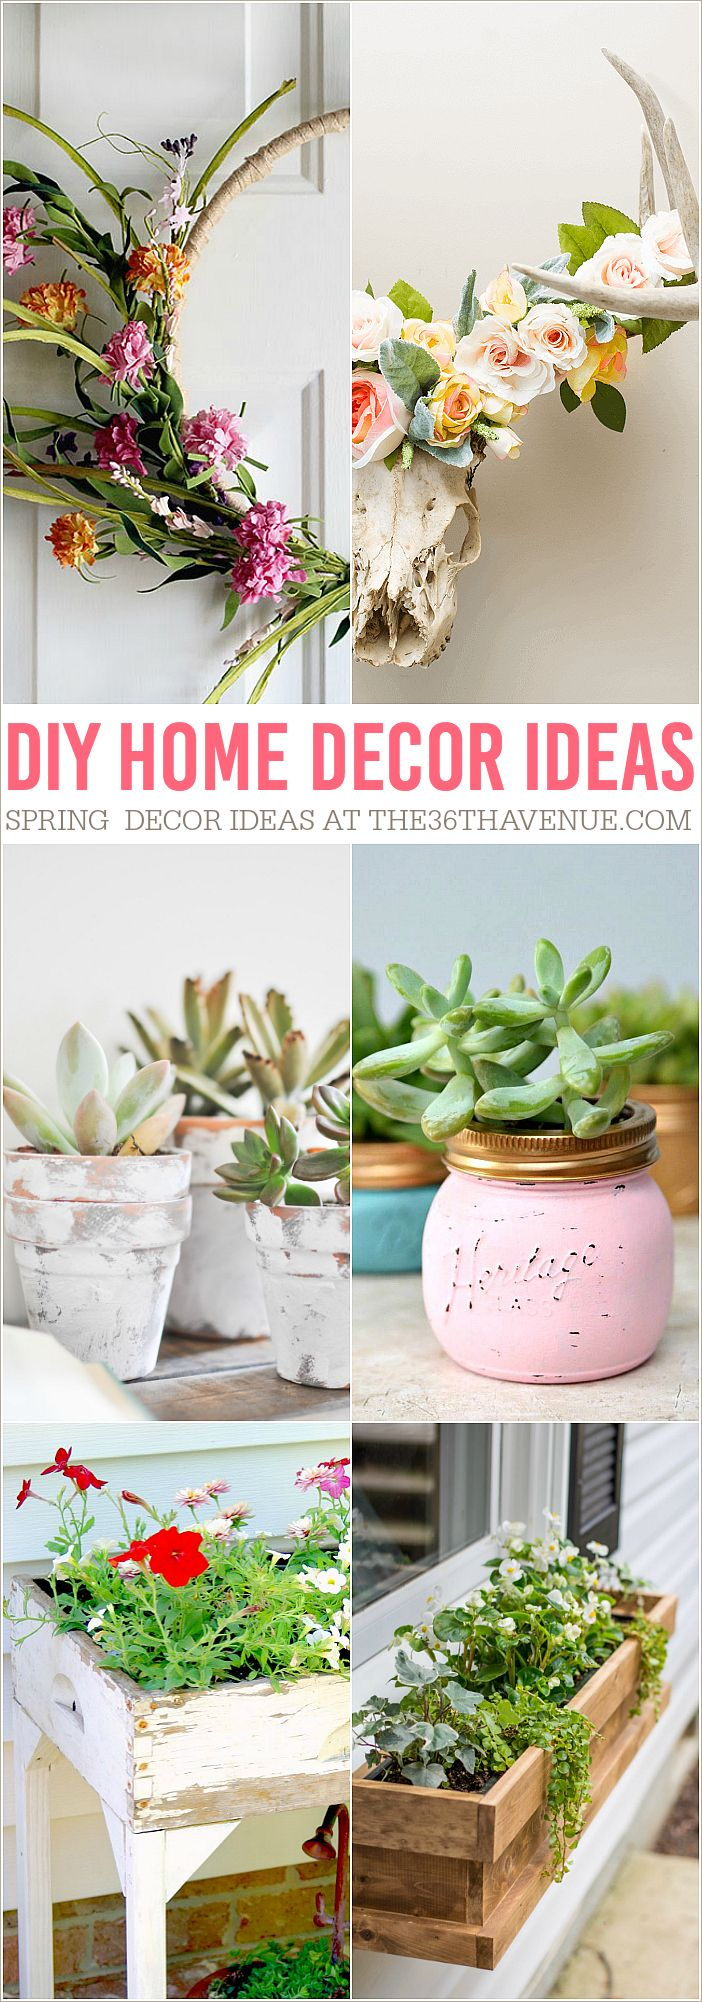 Diy home decor ideas spring inspiration house for Beautiful home decor ideas